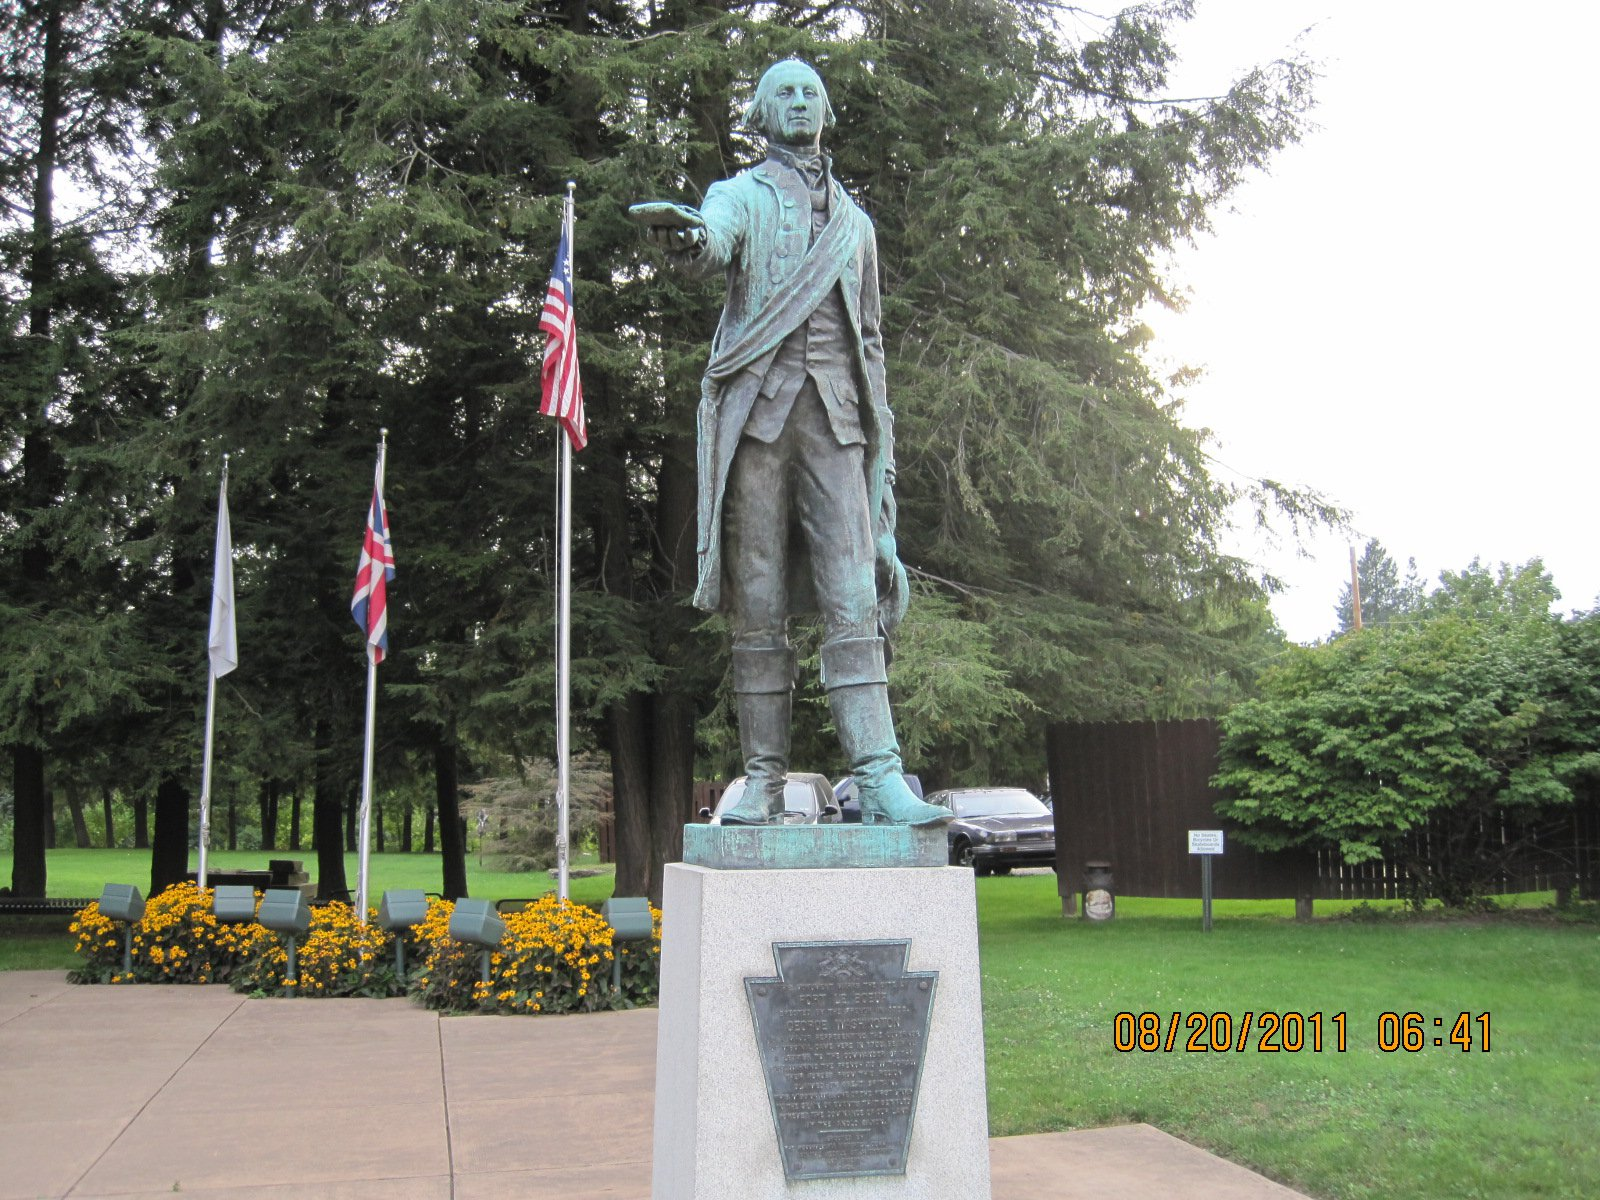 George Washington Statue as it looks today